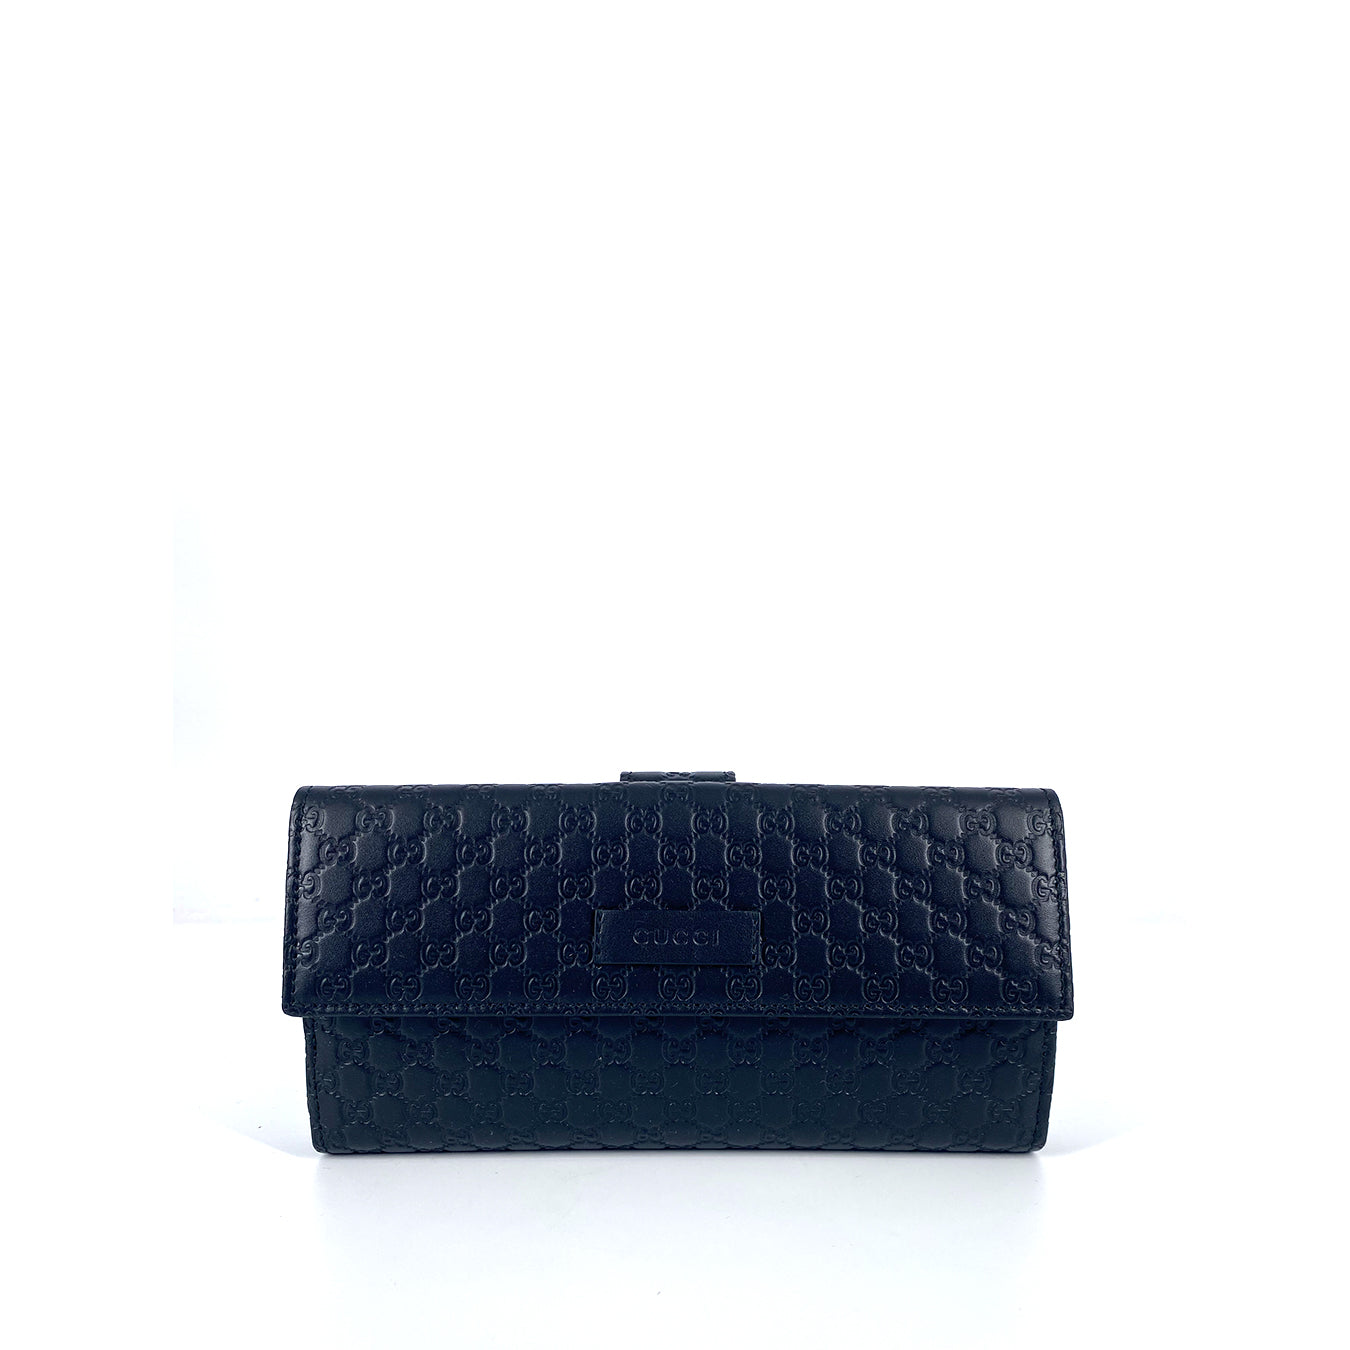 Gucci Microguccissima Continental Flap Long Trifold Leather Women's Wallet Black